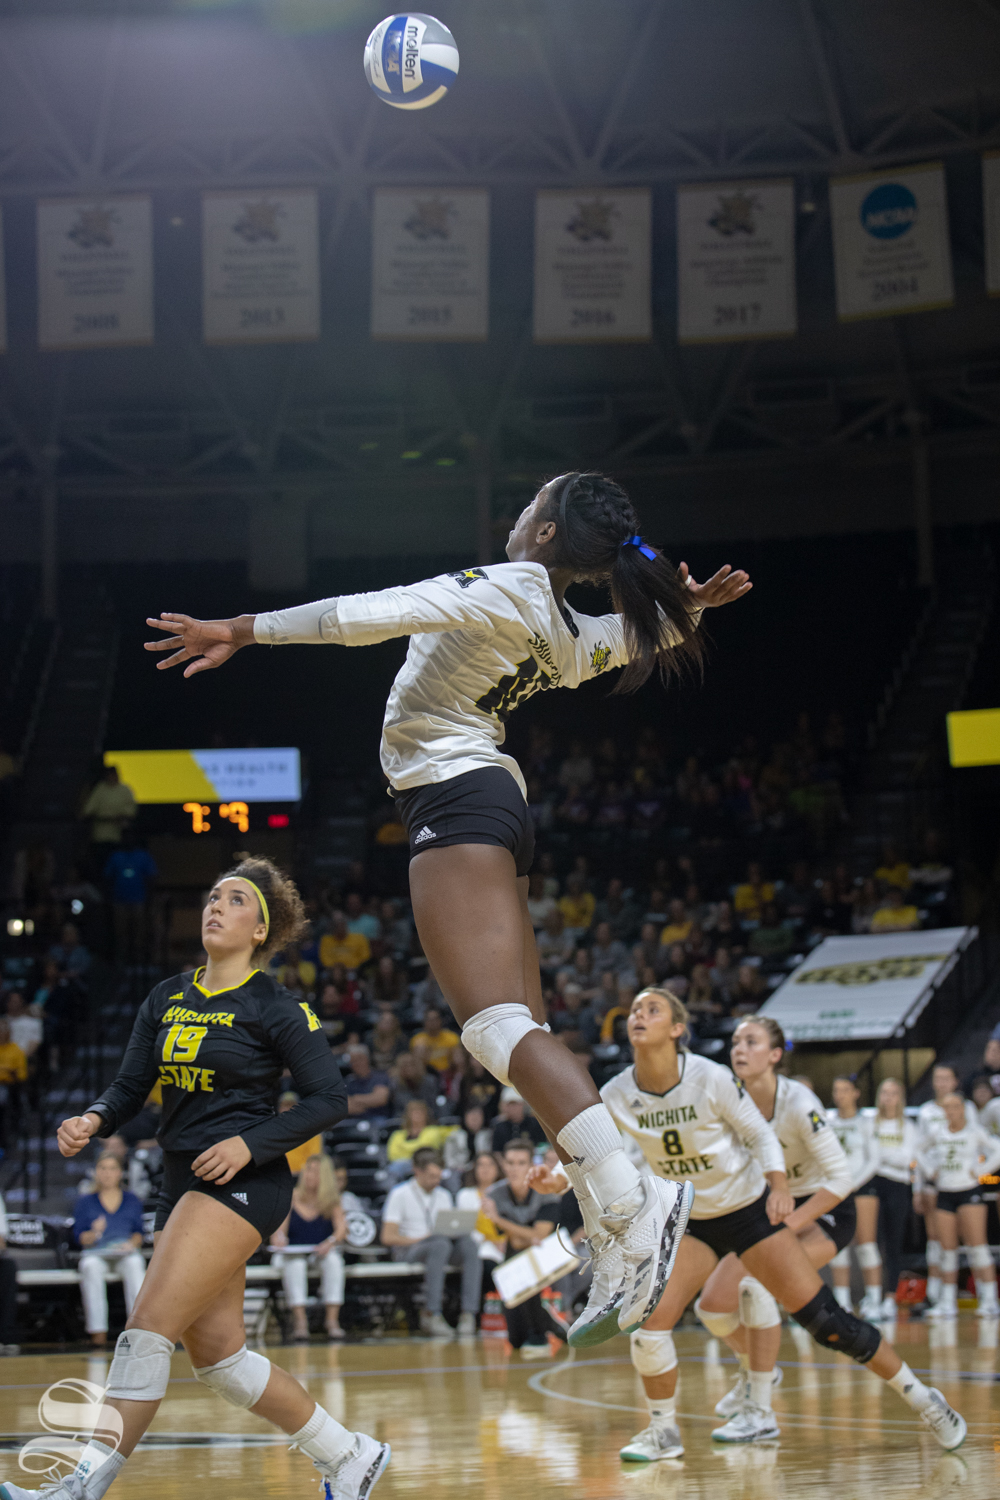 Wichita+State%27s+Tabitha+Brown+goes+up+for+a+spike+during+their+game+against+Tulane+on+Friday+evening+at+Koch+Arena.+%28Sept.+21%2C+2018%29